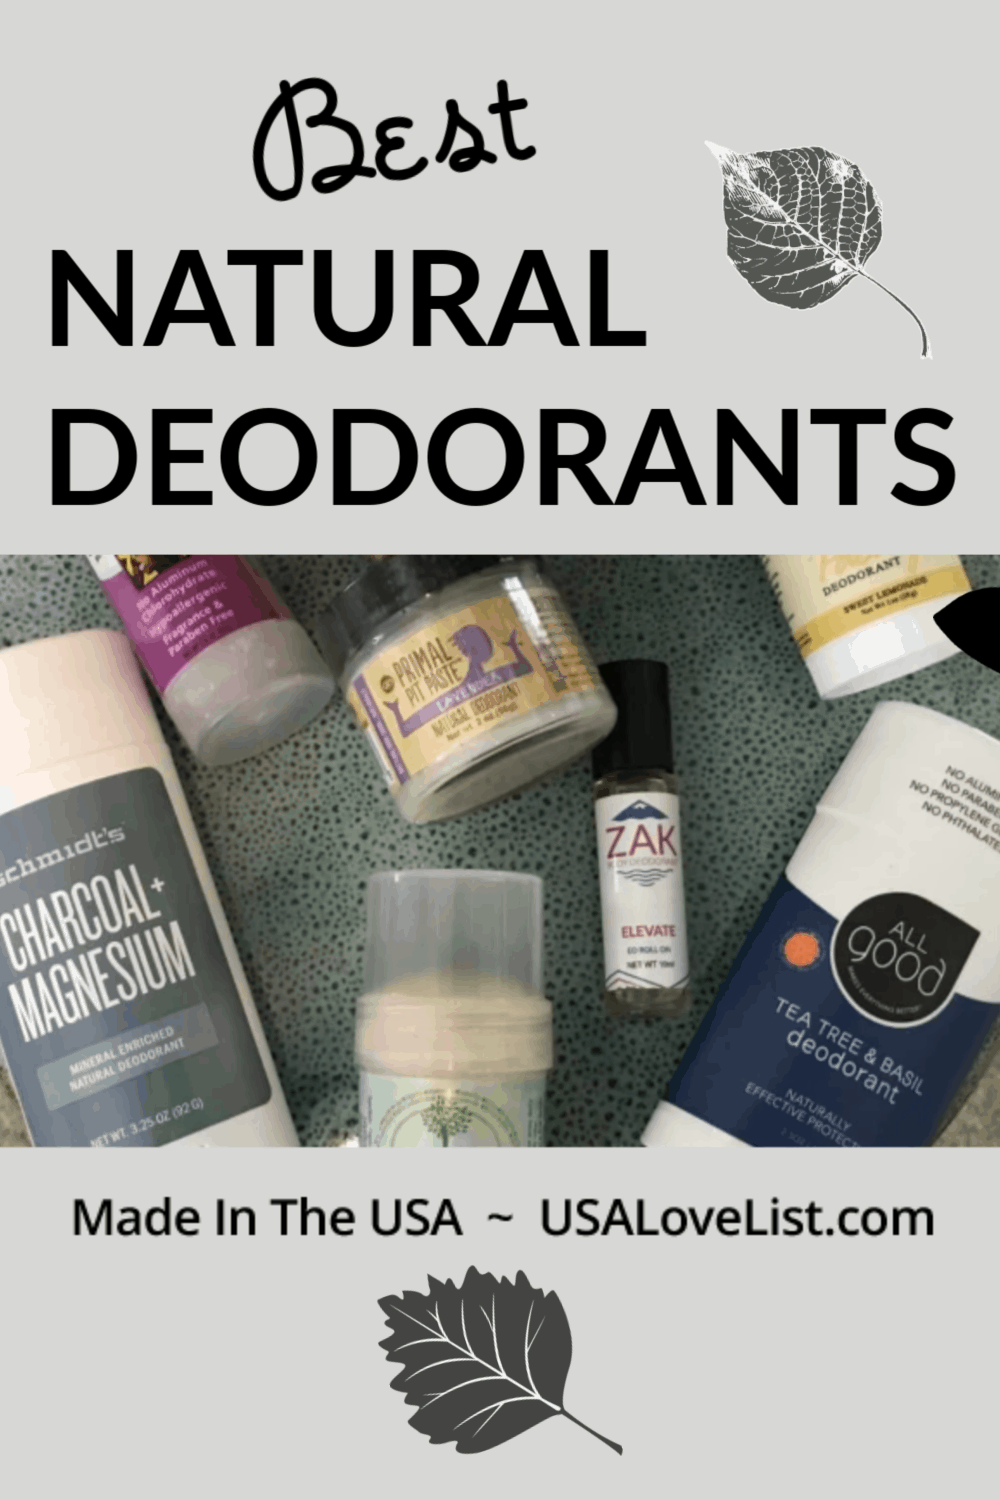 Best natural deodorants made in USA